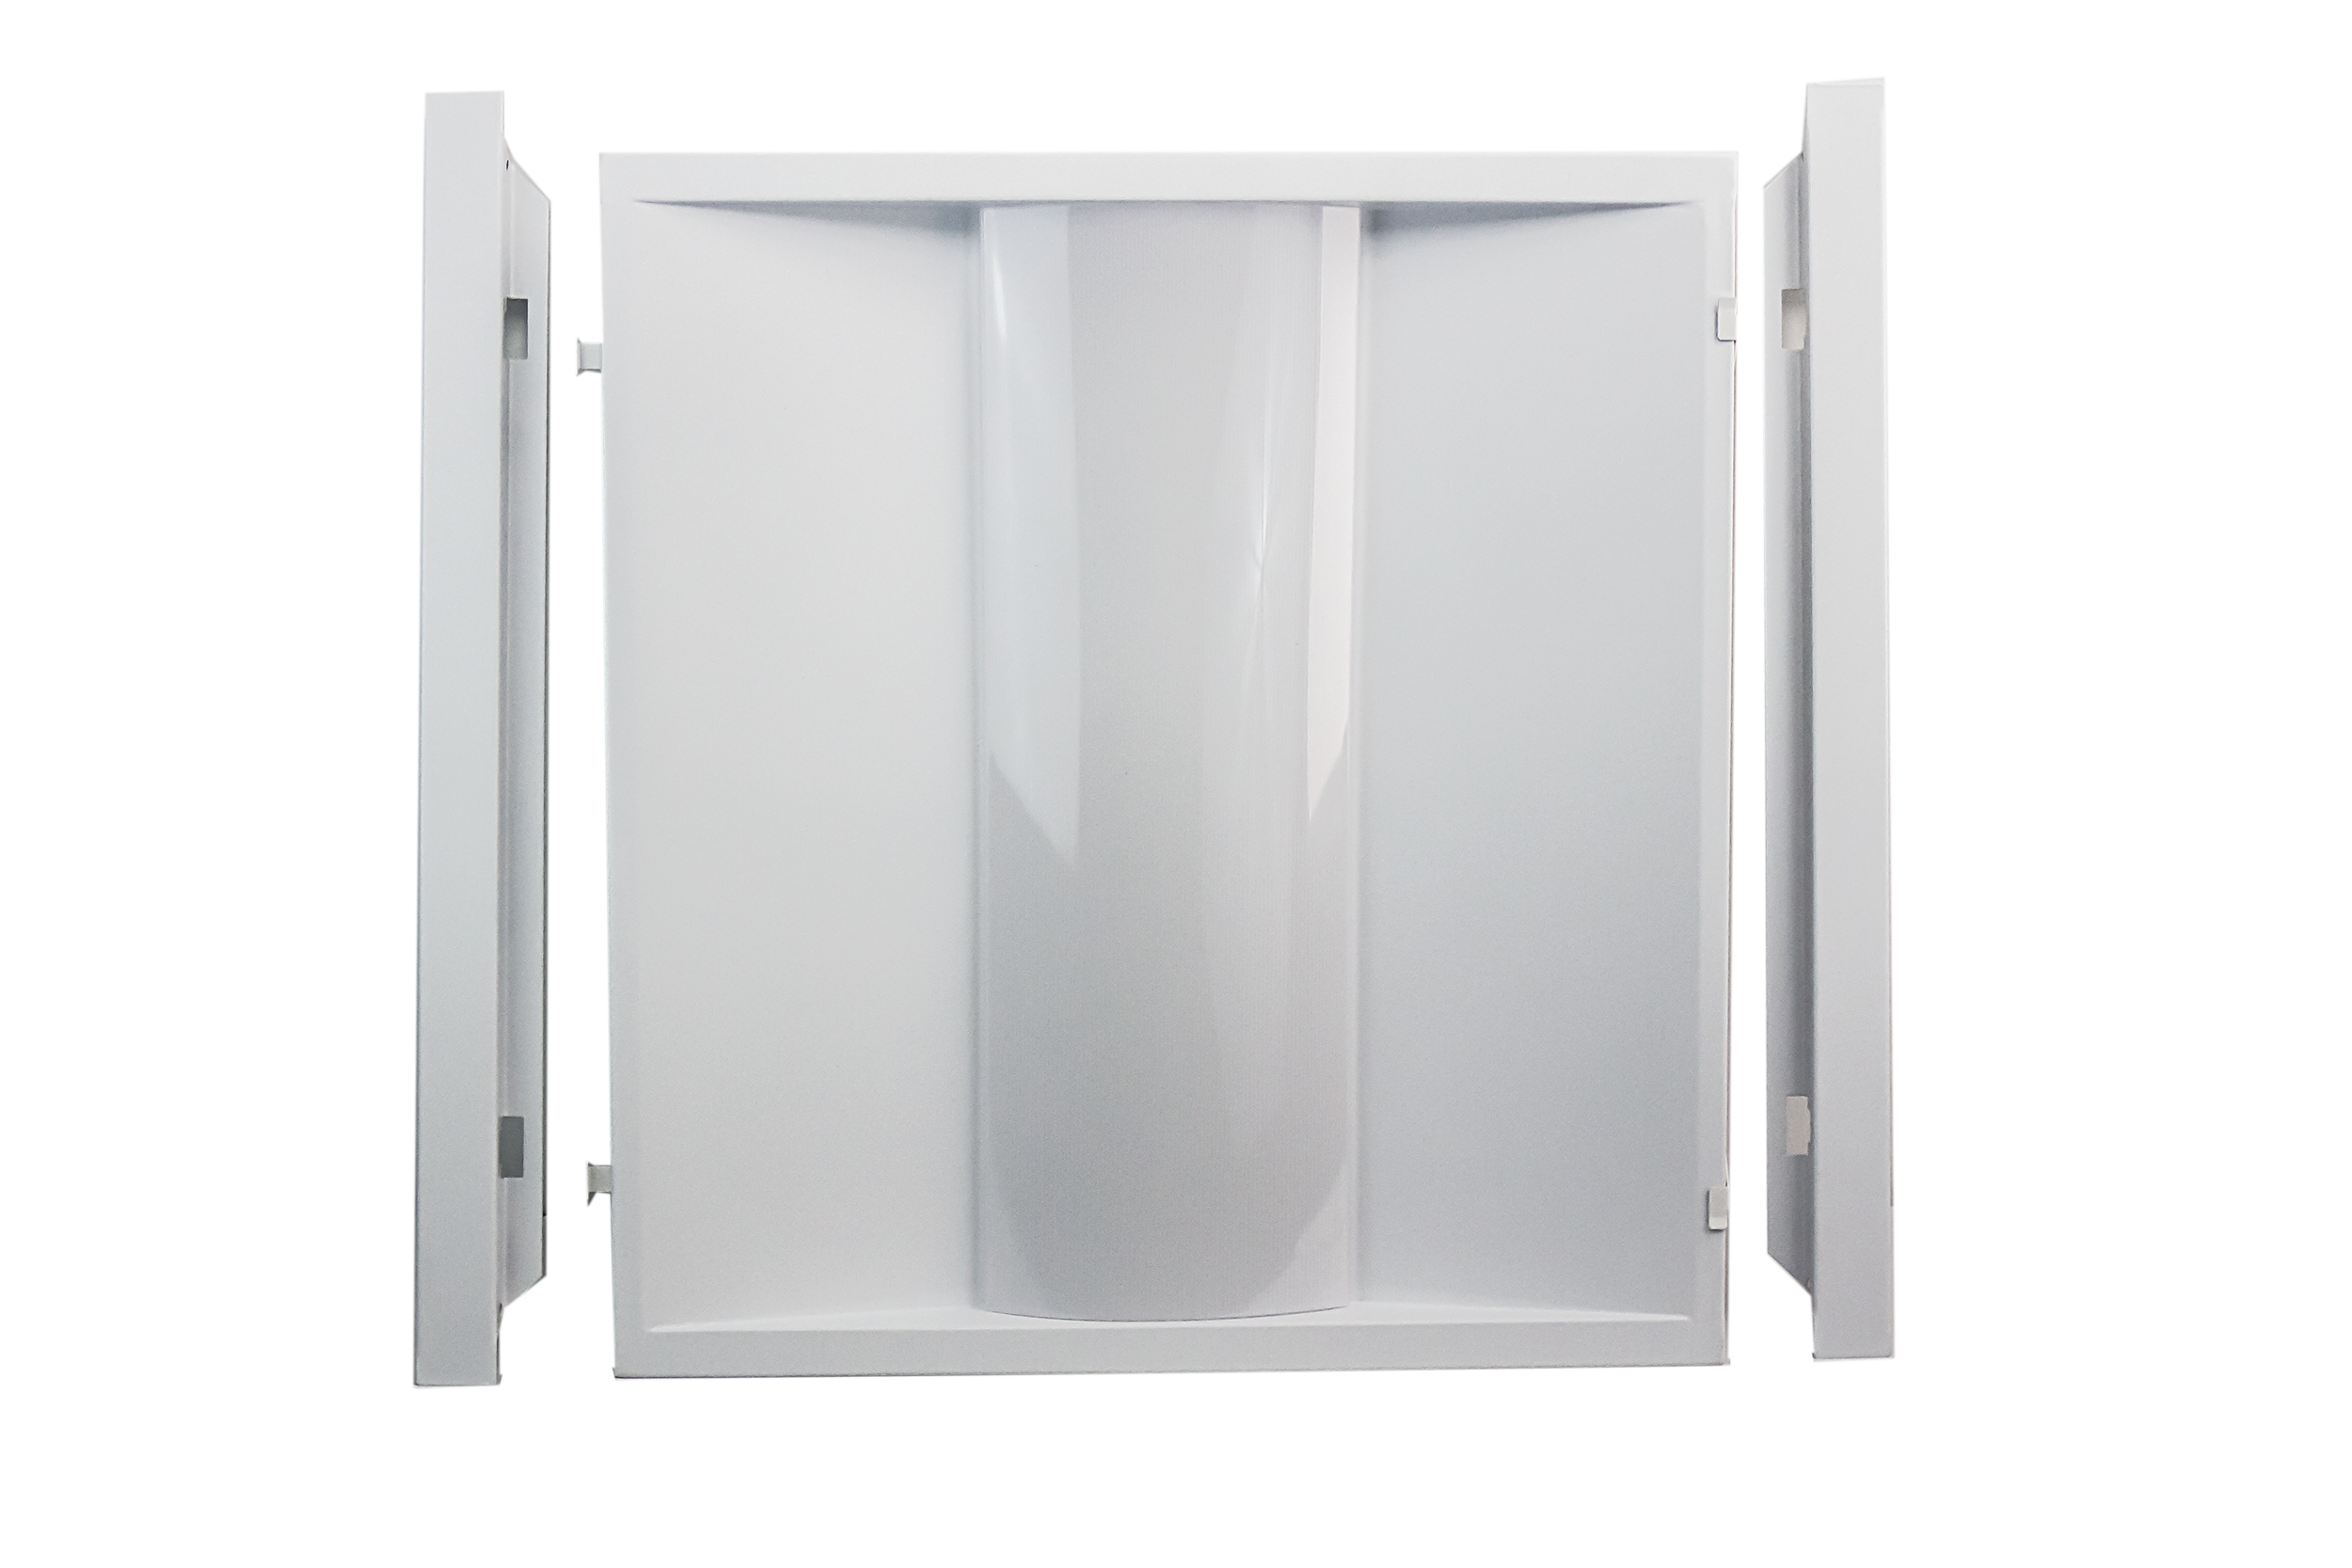 2x2 Door Kit Transparent.png